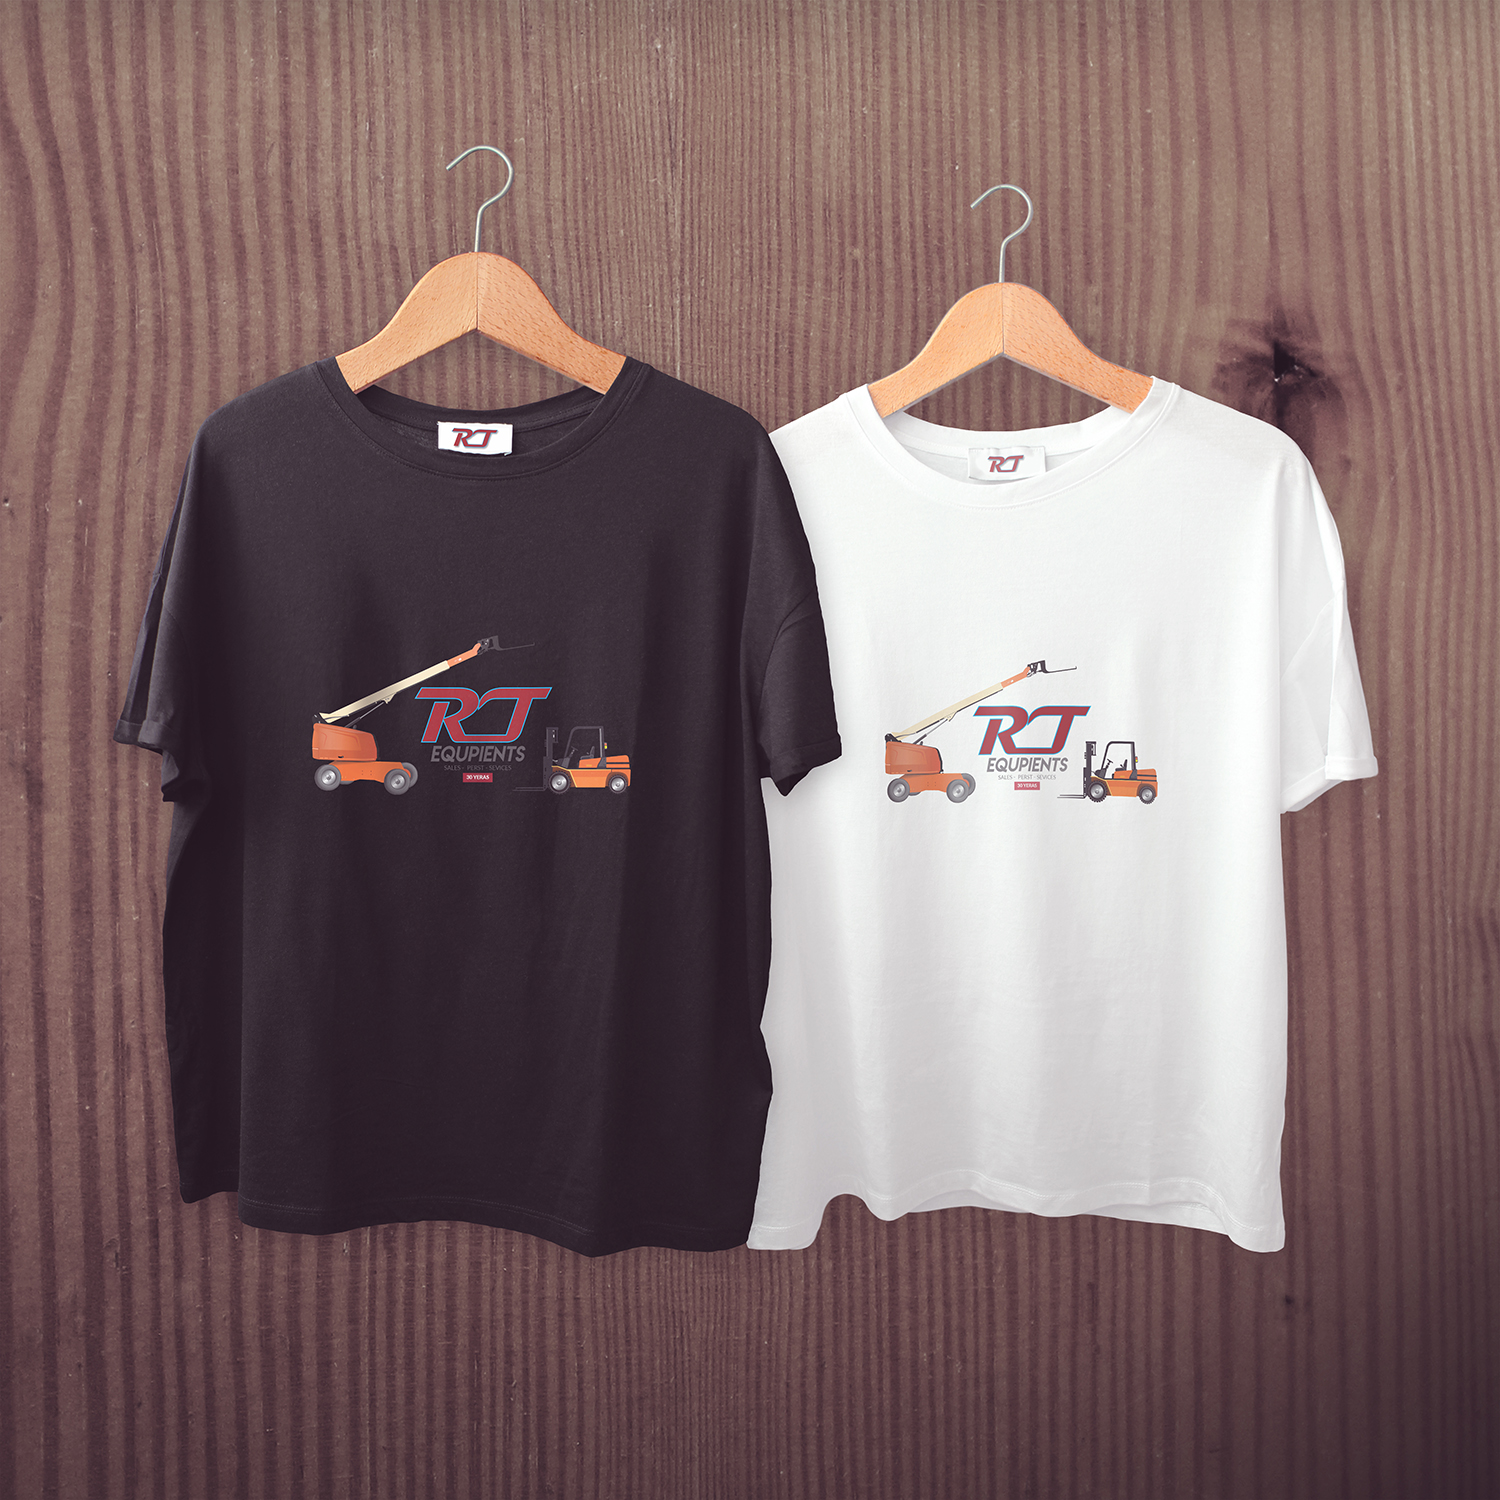 30 elegant playful t shirt designs for a business in for T shirt design materials